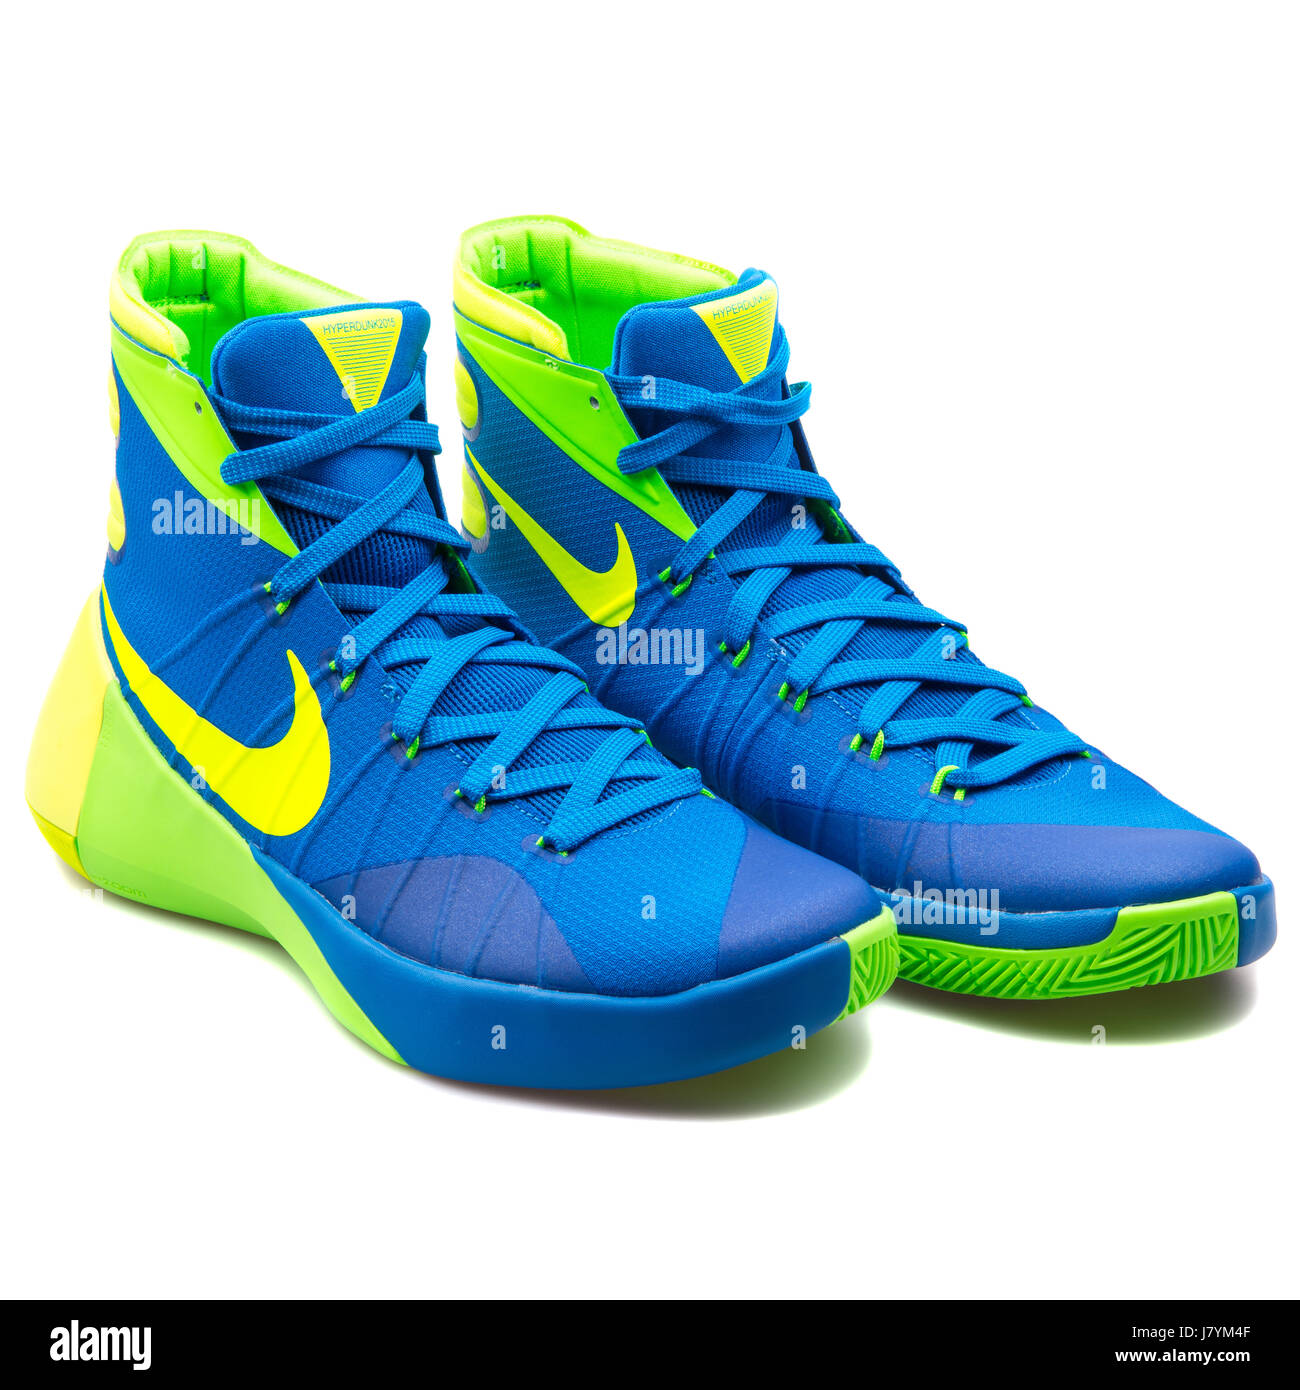 online store bfb51 6d32c Nike Hyperdunk 2015 Men s Blue Yellow and Green Basketball Sneakers -  749561-473 - Stock